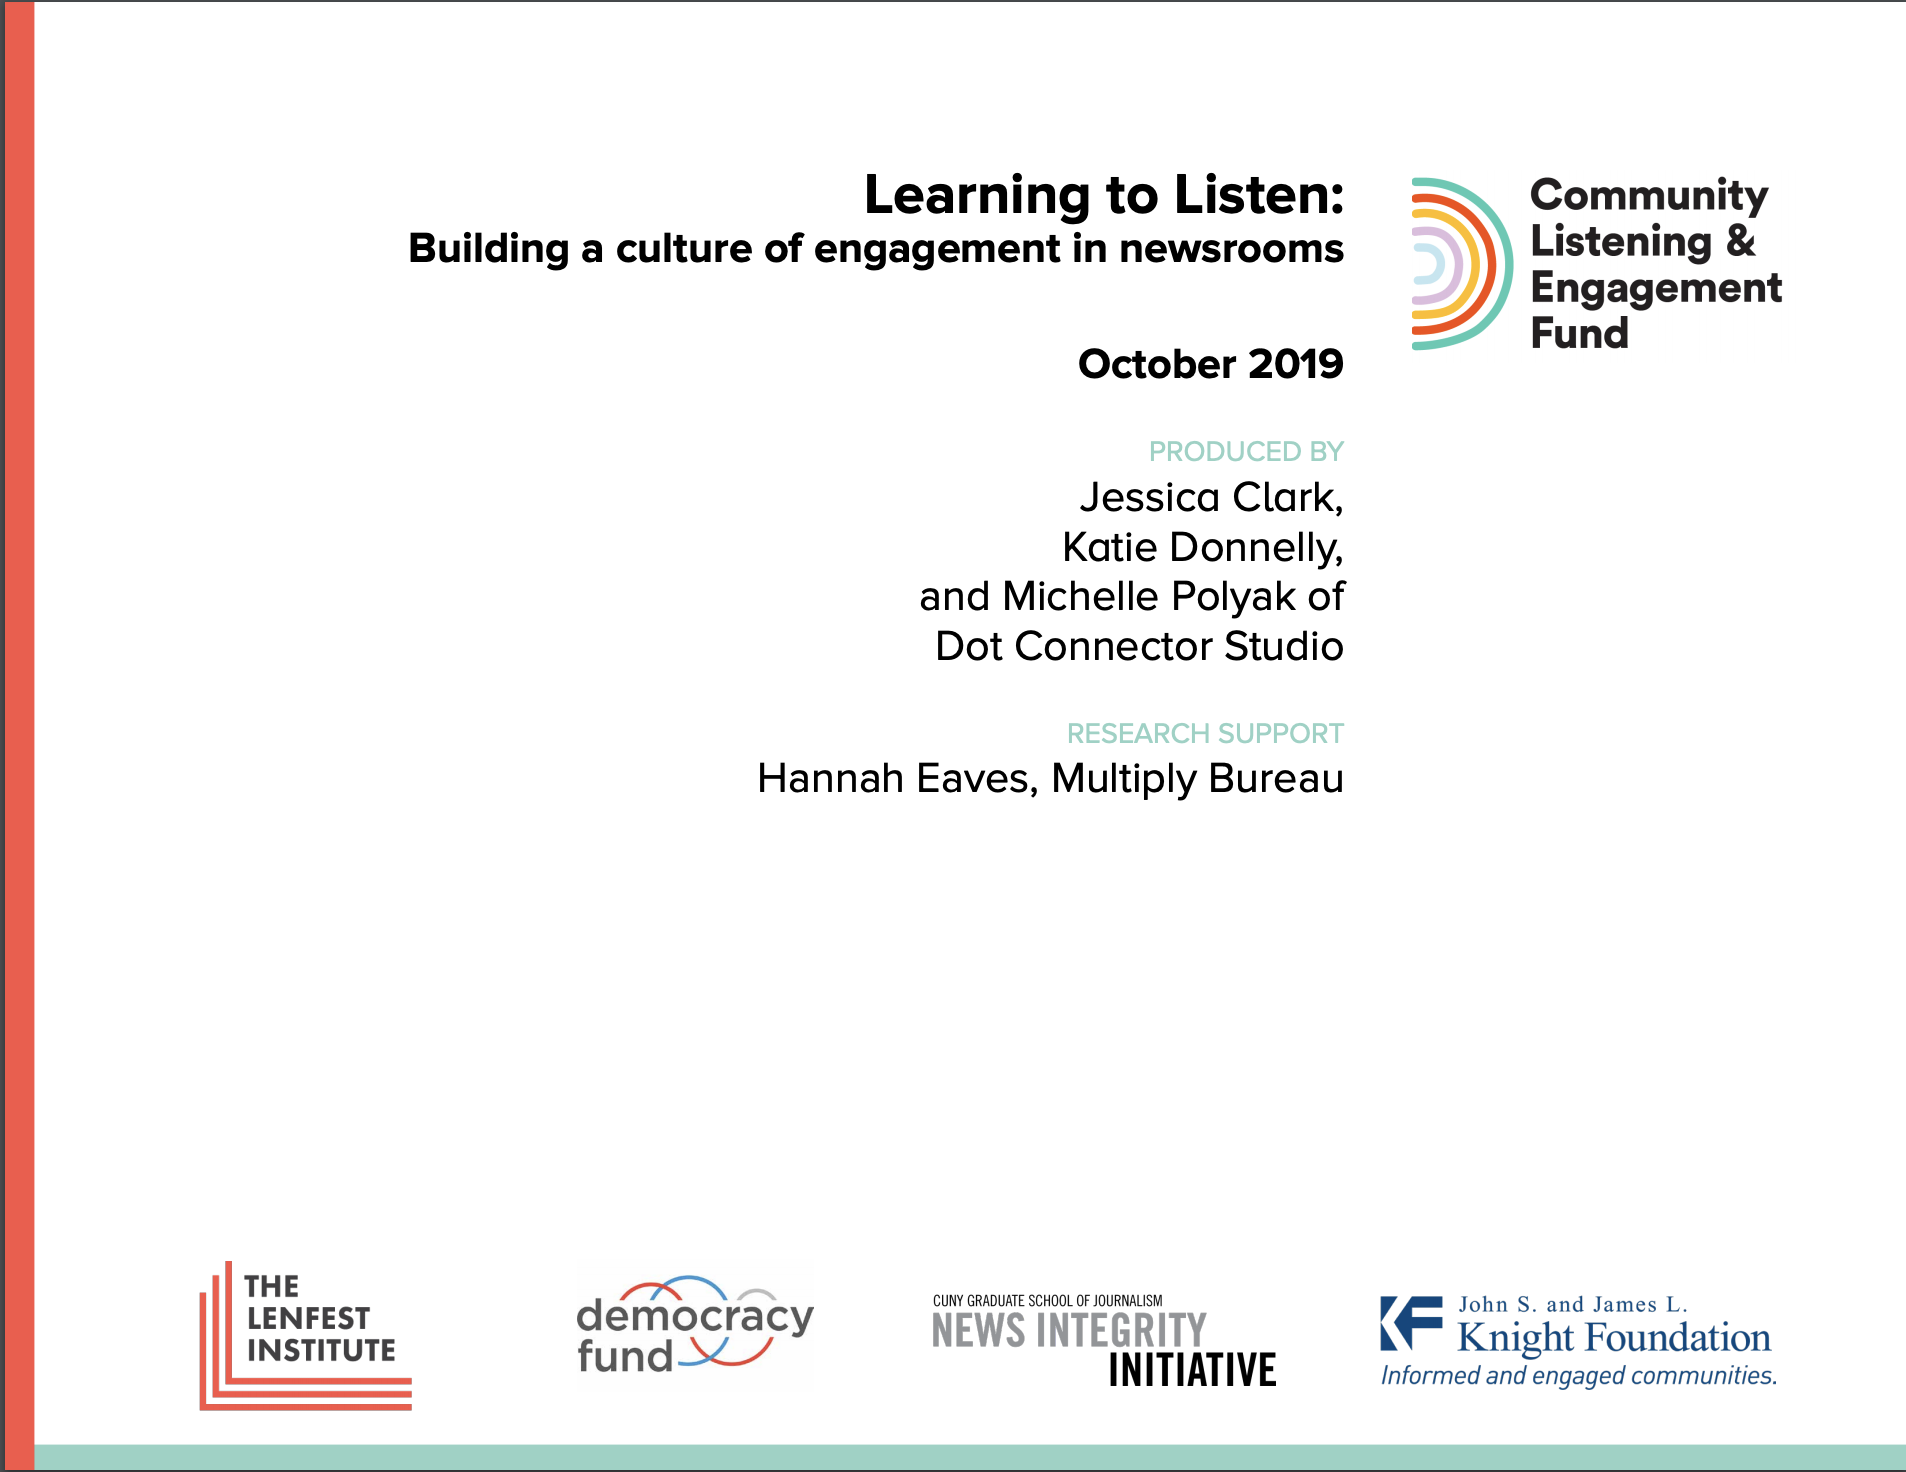 Don't miss our latest report on CLEF: Learning to Listen